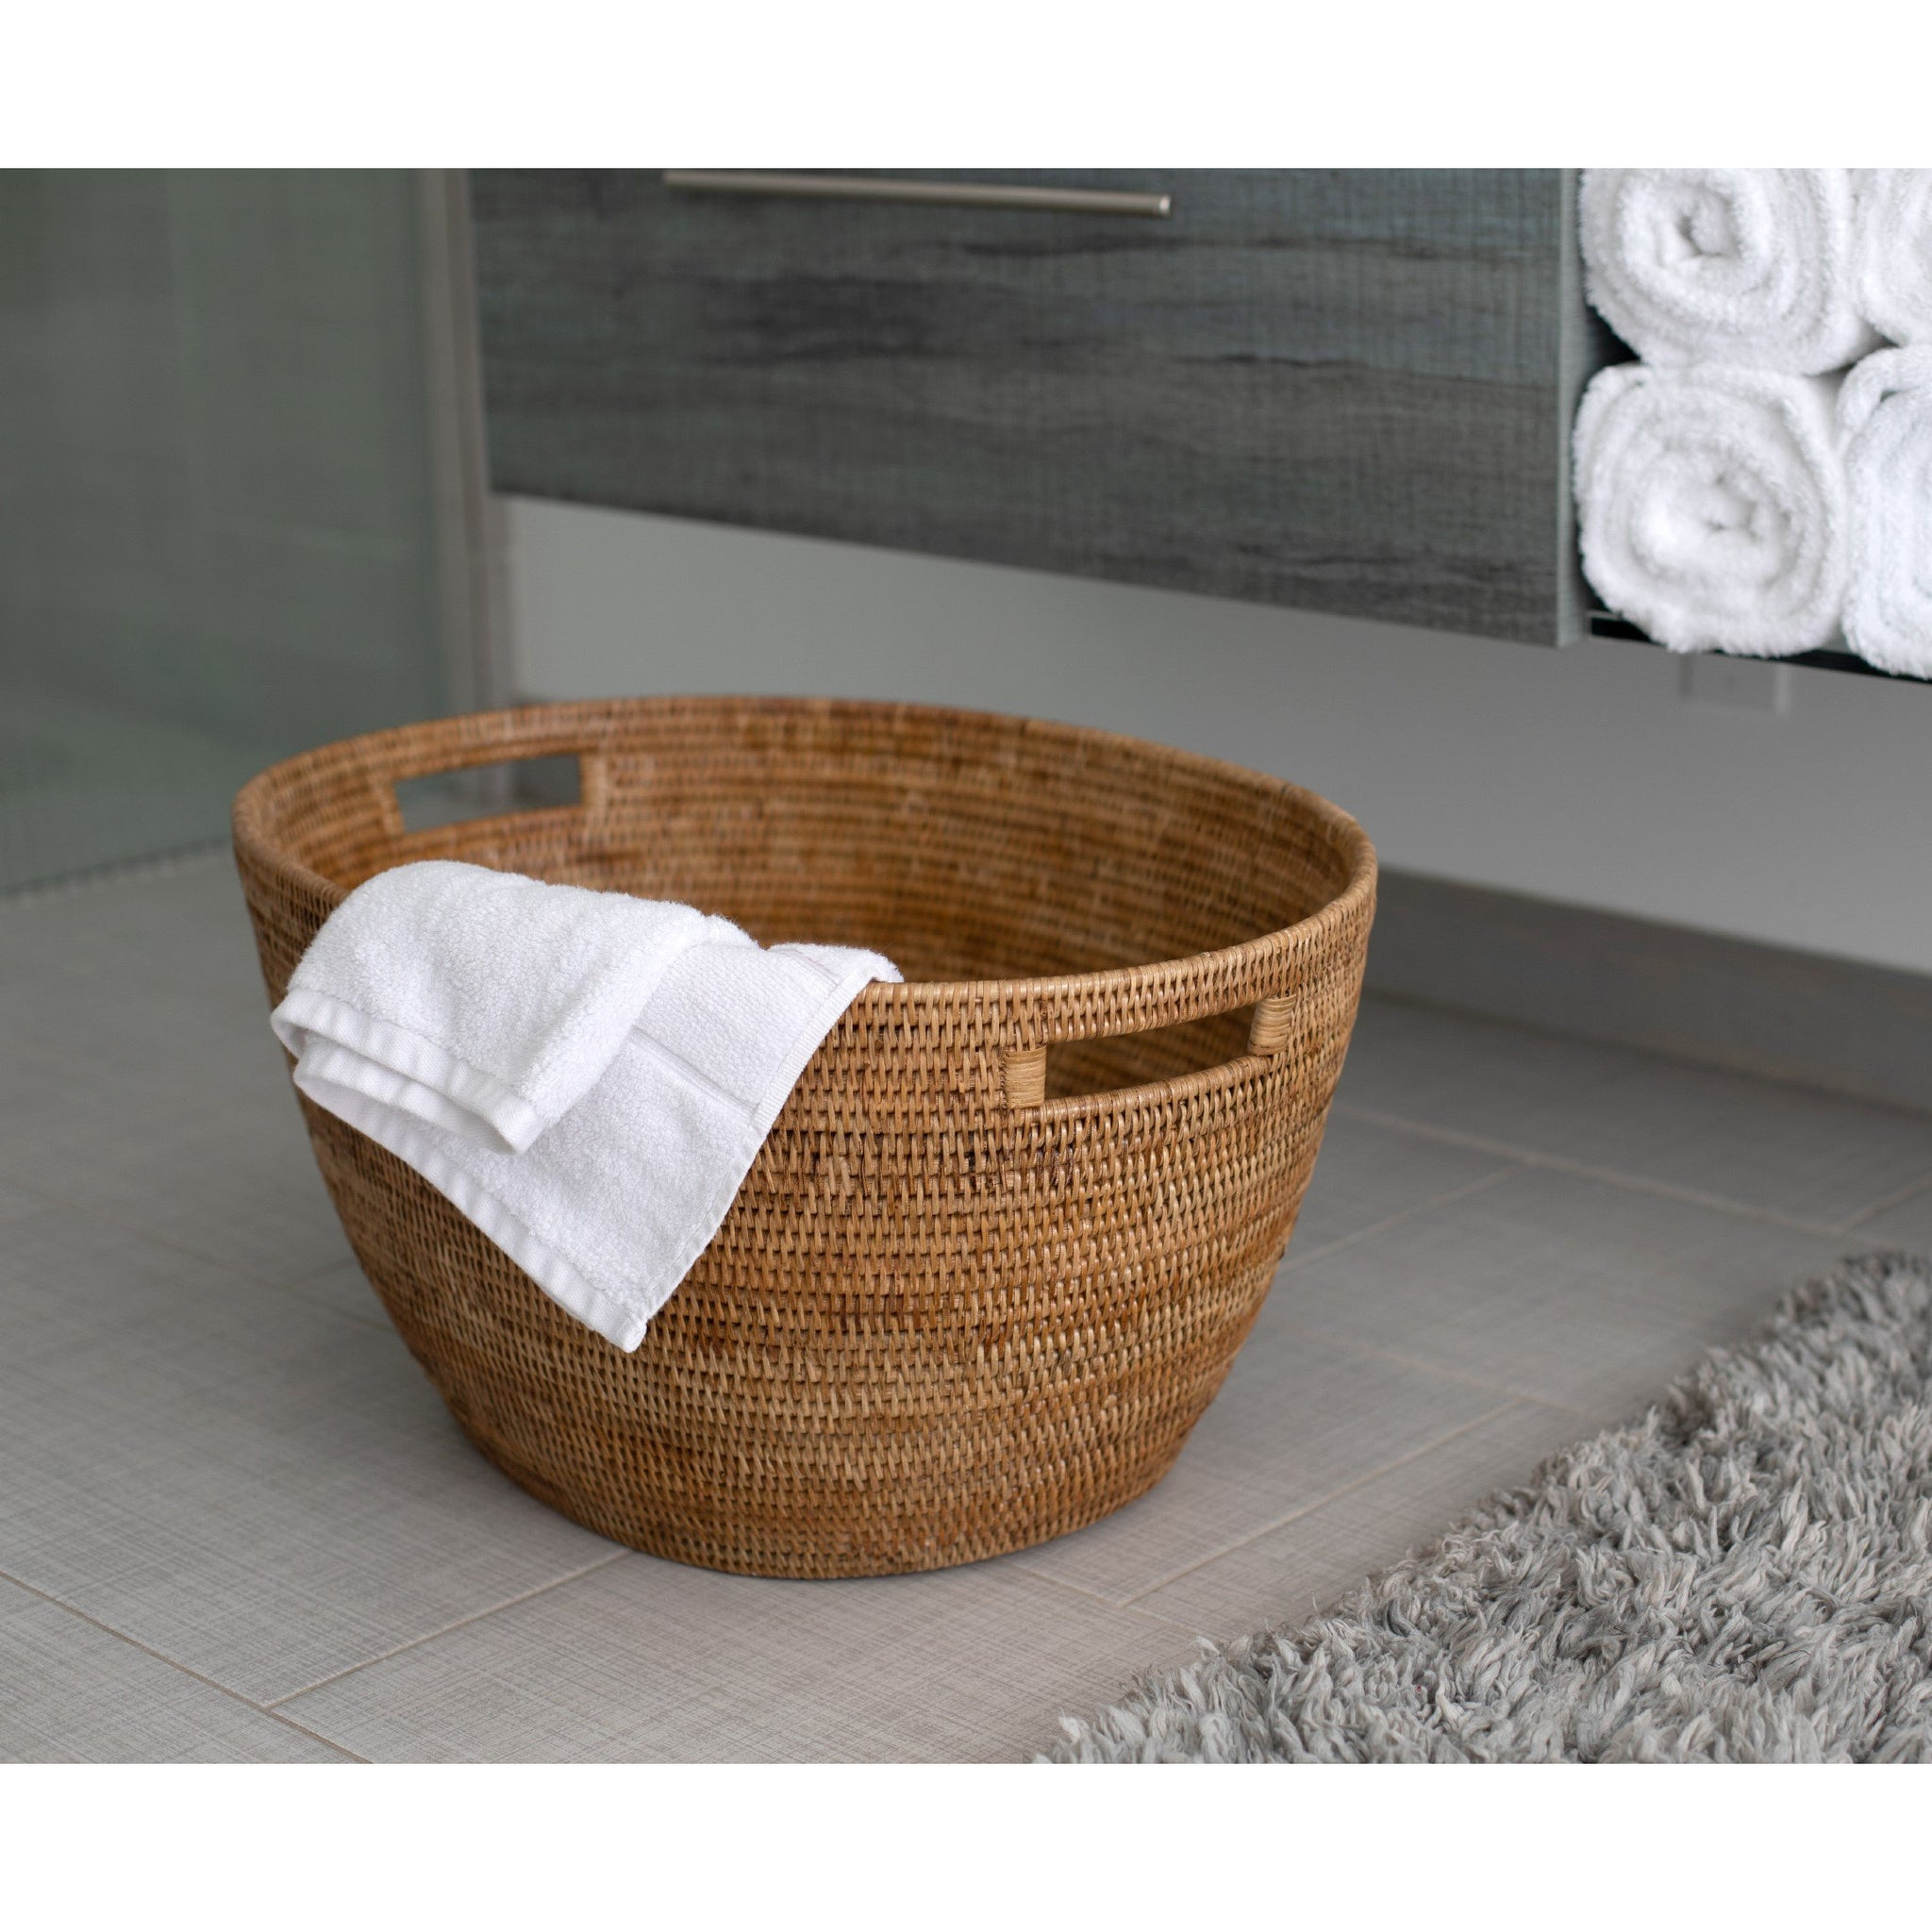 ATC-BS335 Laundry Basket with Cutout Handles